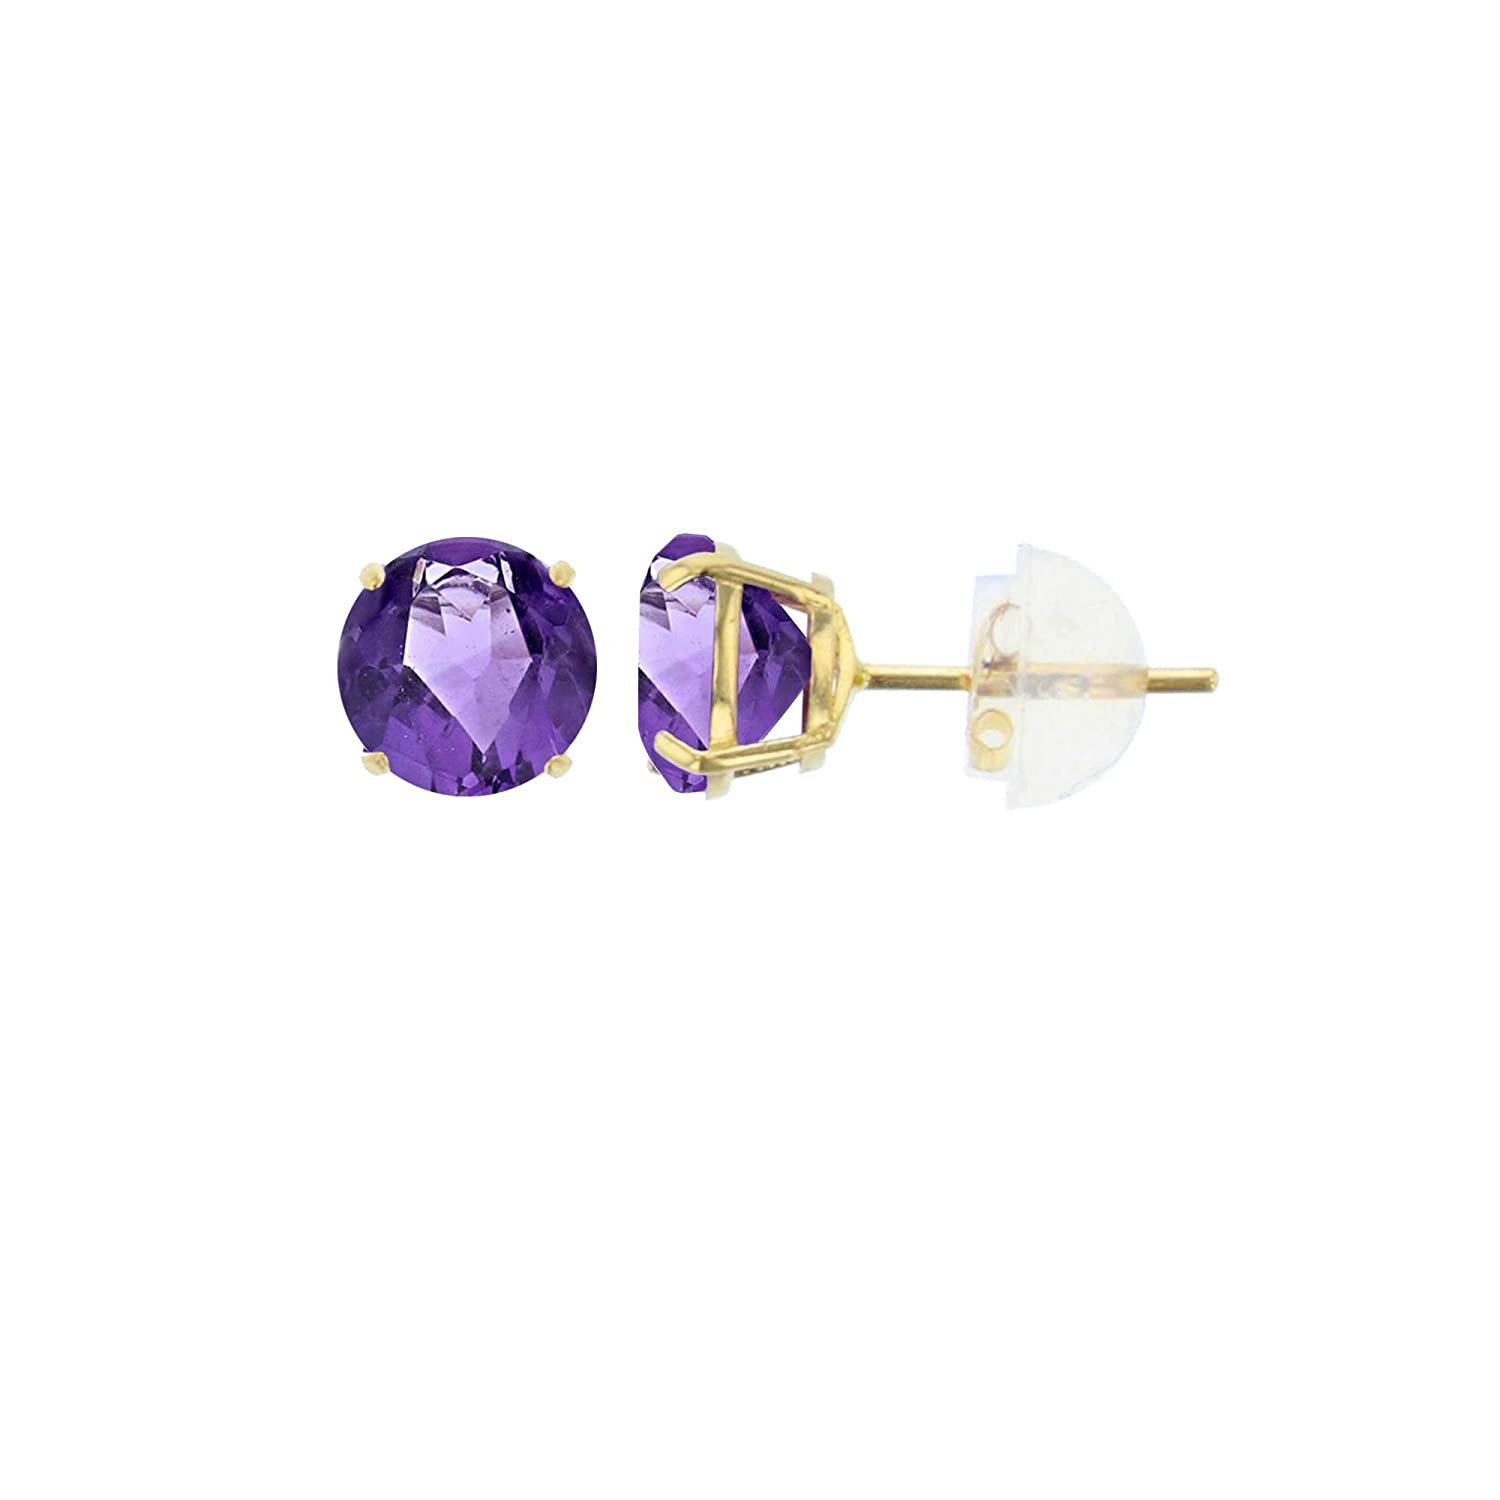 Prong Set Gold Earrings For Women Natural Gemstones White or Rose Gold 4mm Round Genuine Gemstone Birthstone Stud Earrings Solid Gold Solid 10K Yellow